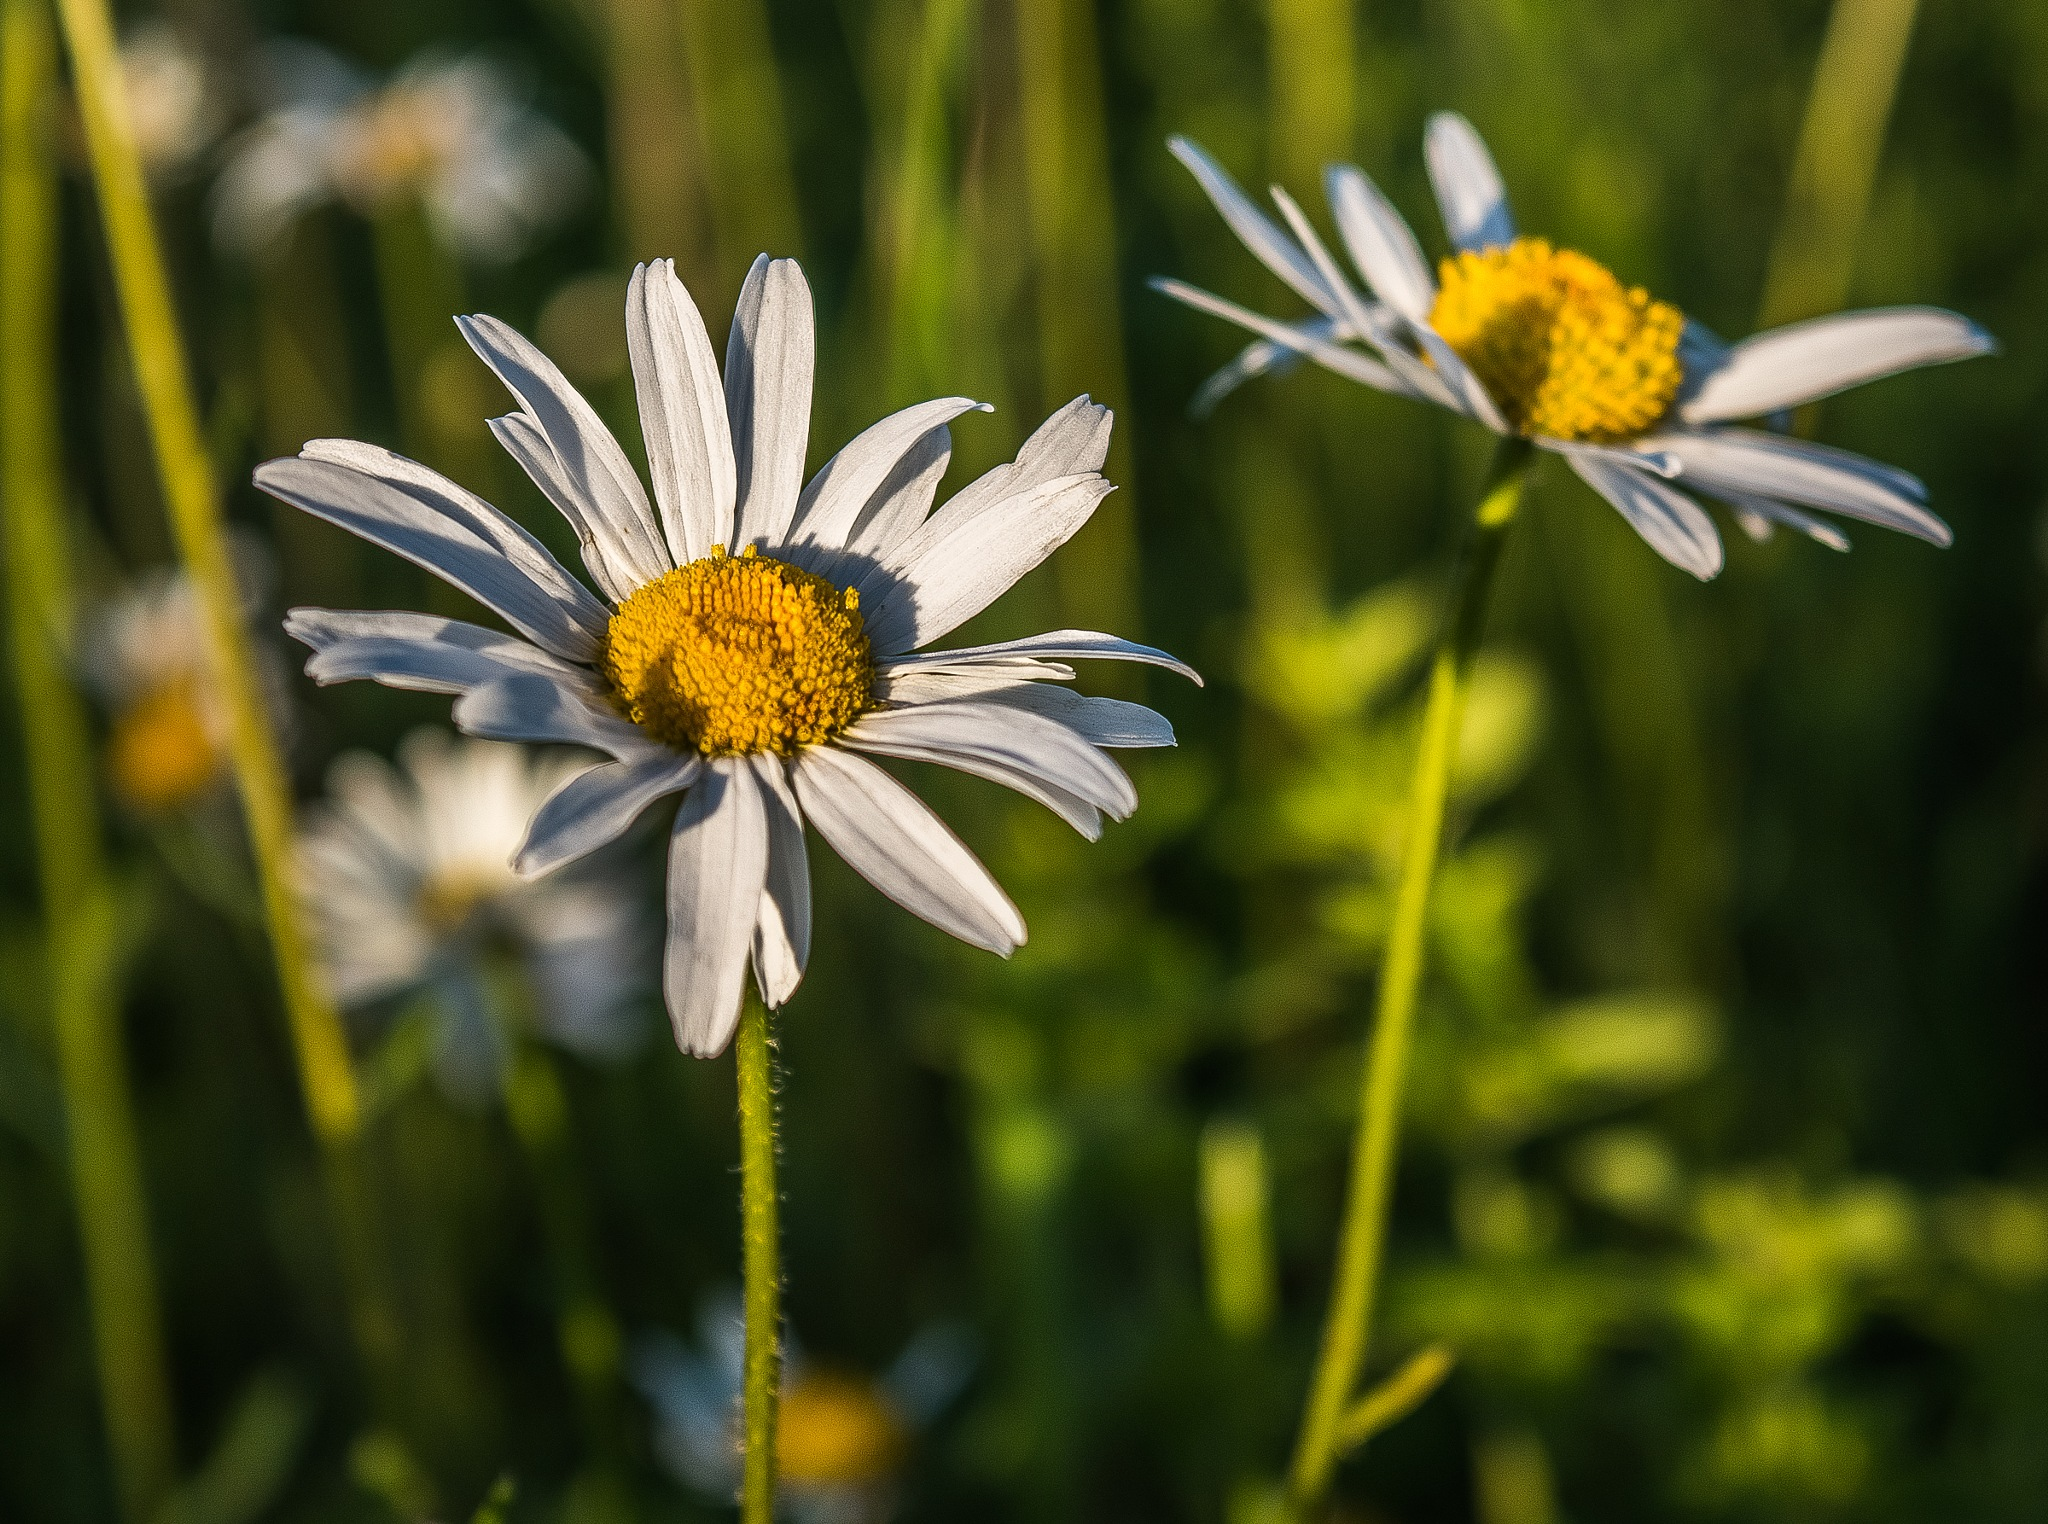 Evening Daisies by madchickenwoman